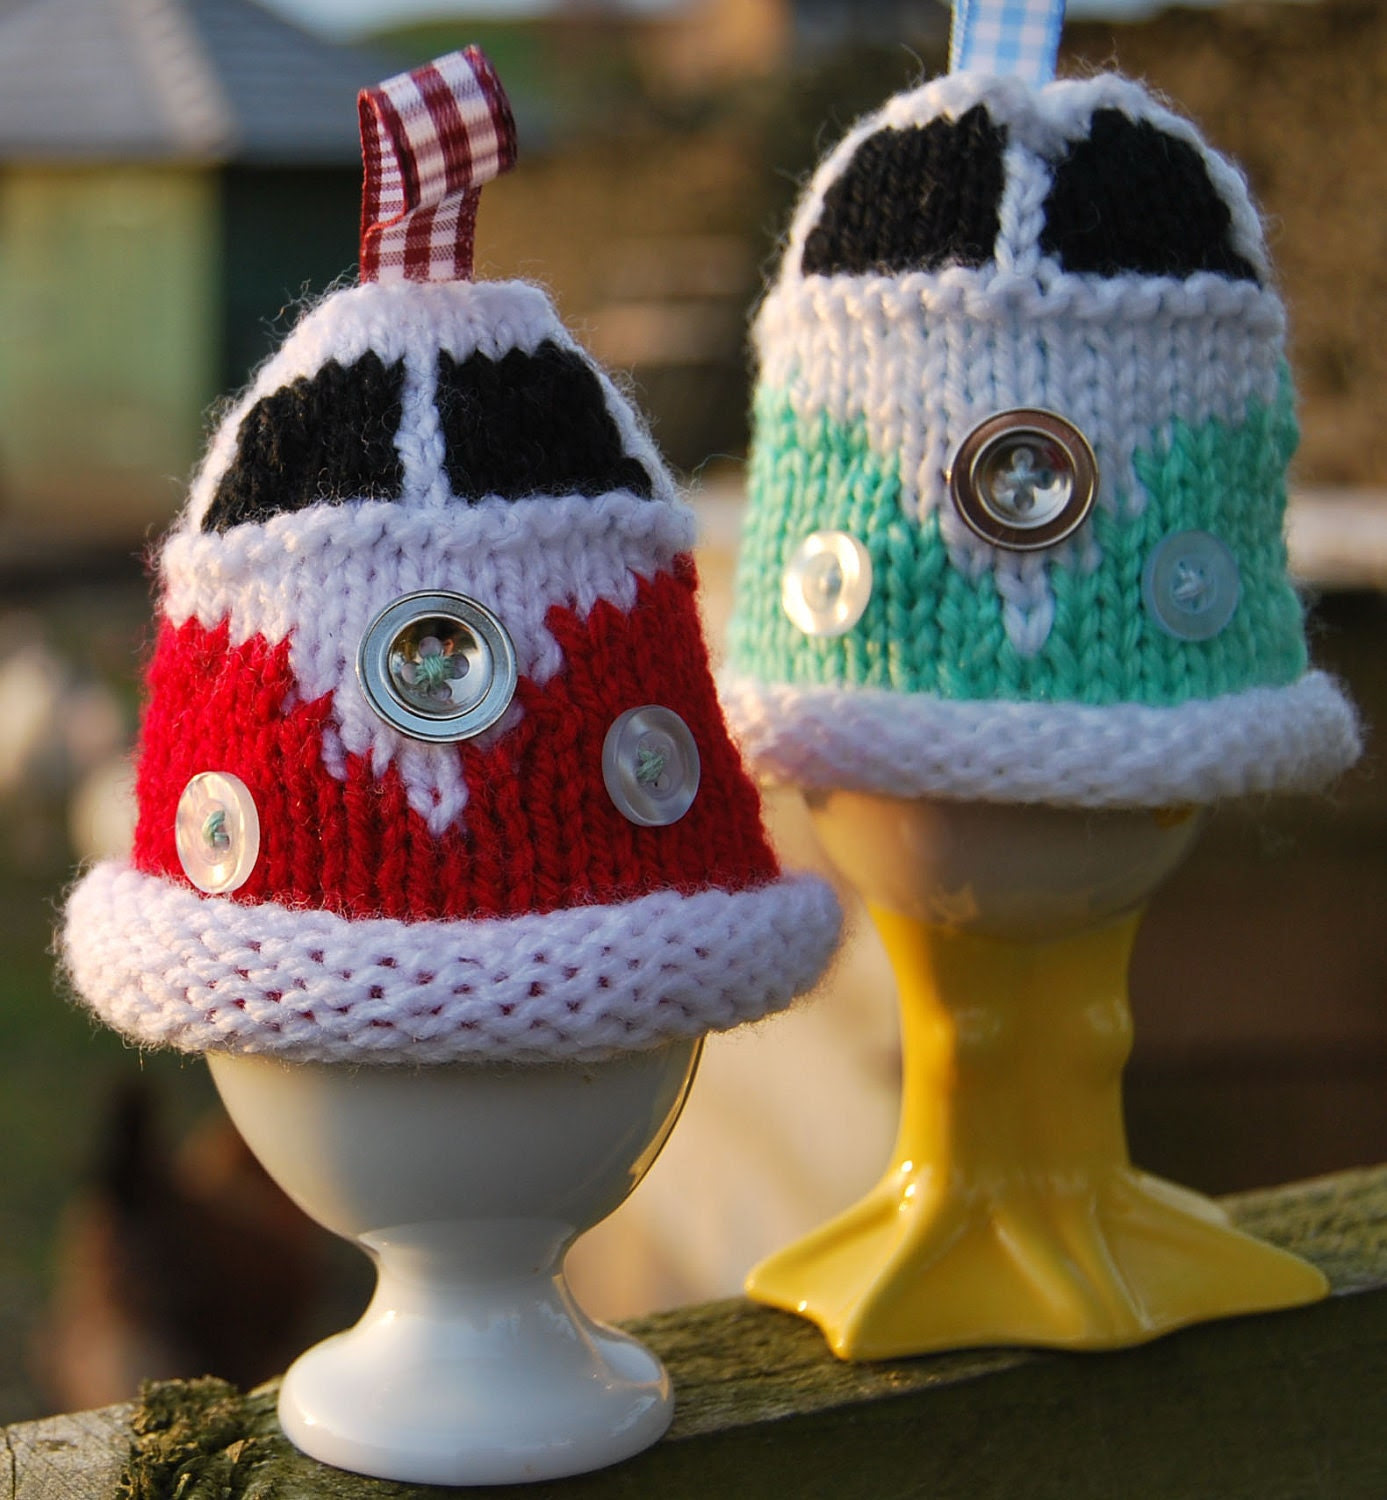 Knitting Pattern - Knit a Campervan Egg Cosy (VW, Bus, Kombi, Microbus), perfect gift for Easter.